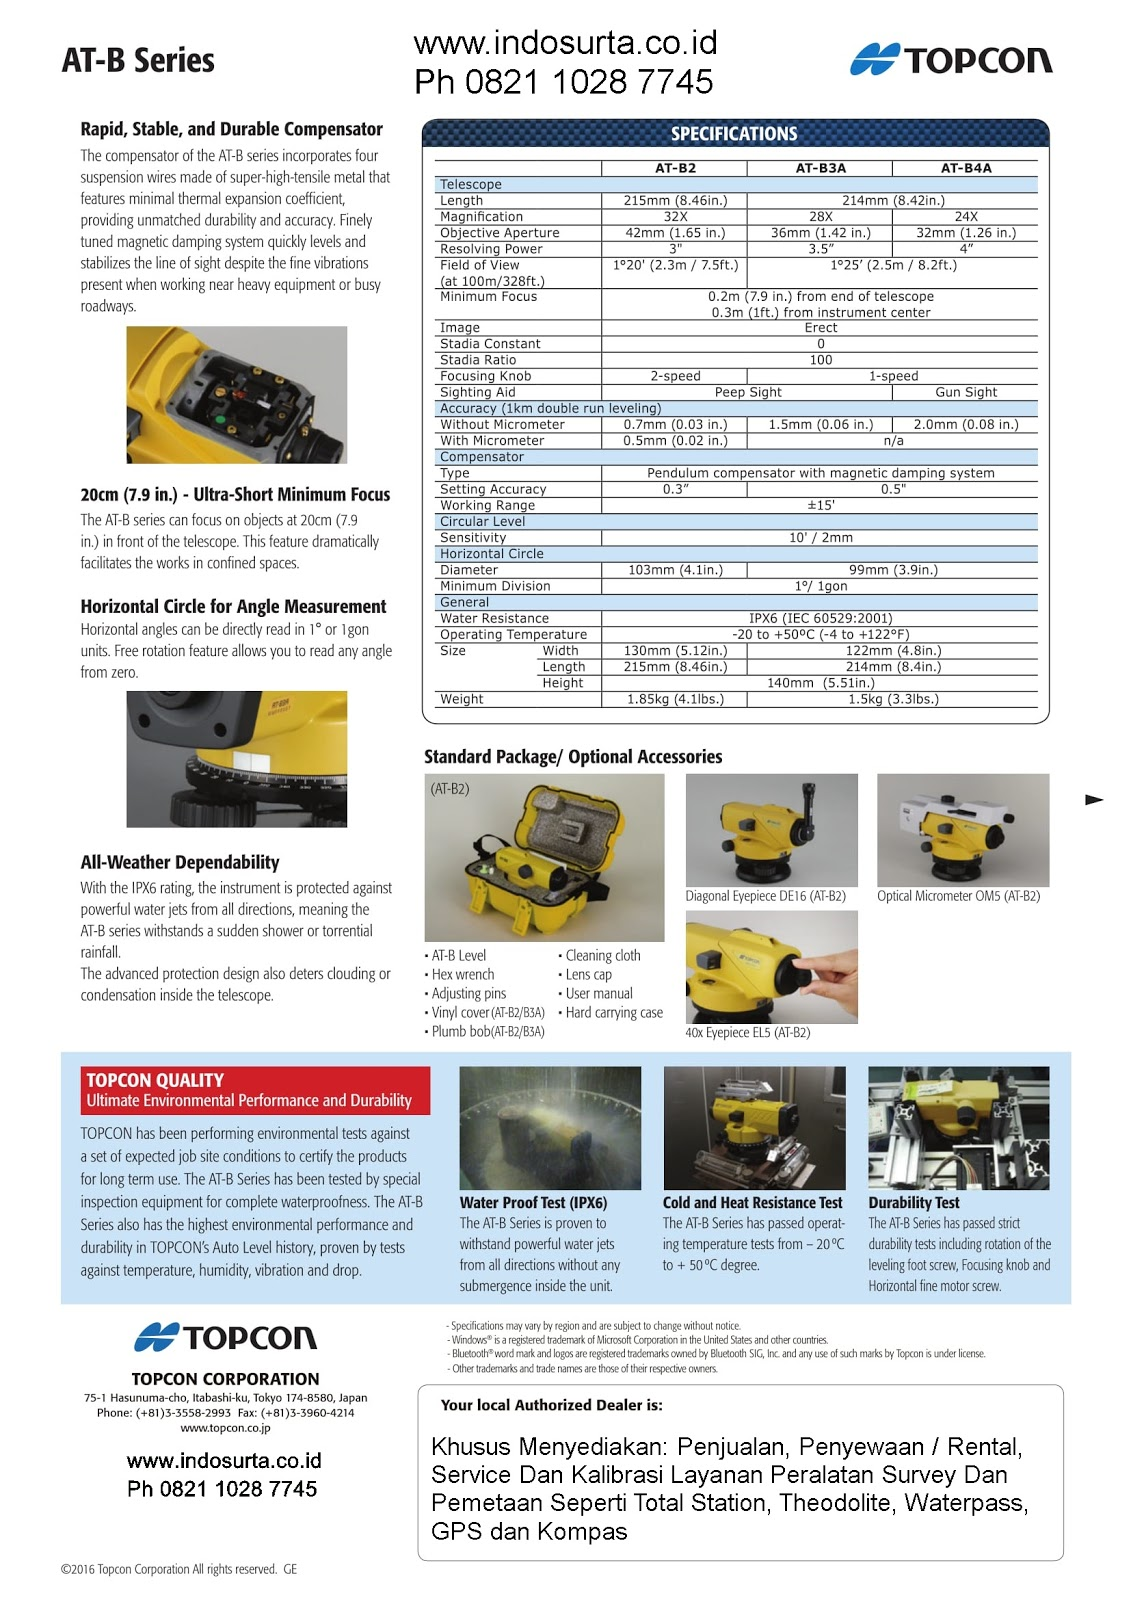 Brosur Auto Level / Waterpass TOPCON AT-B2 3 4  Series